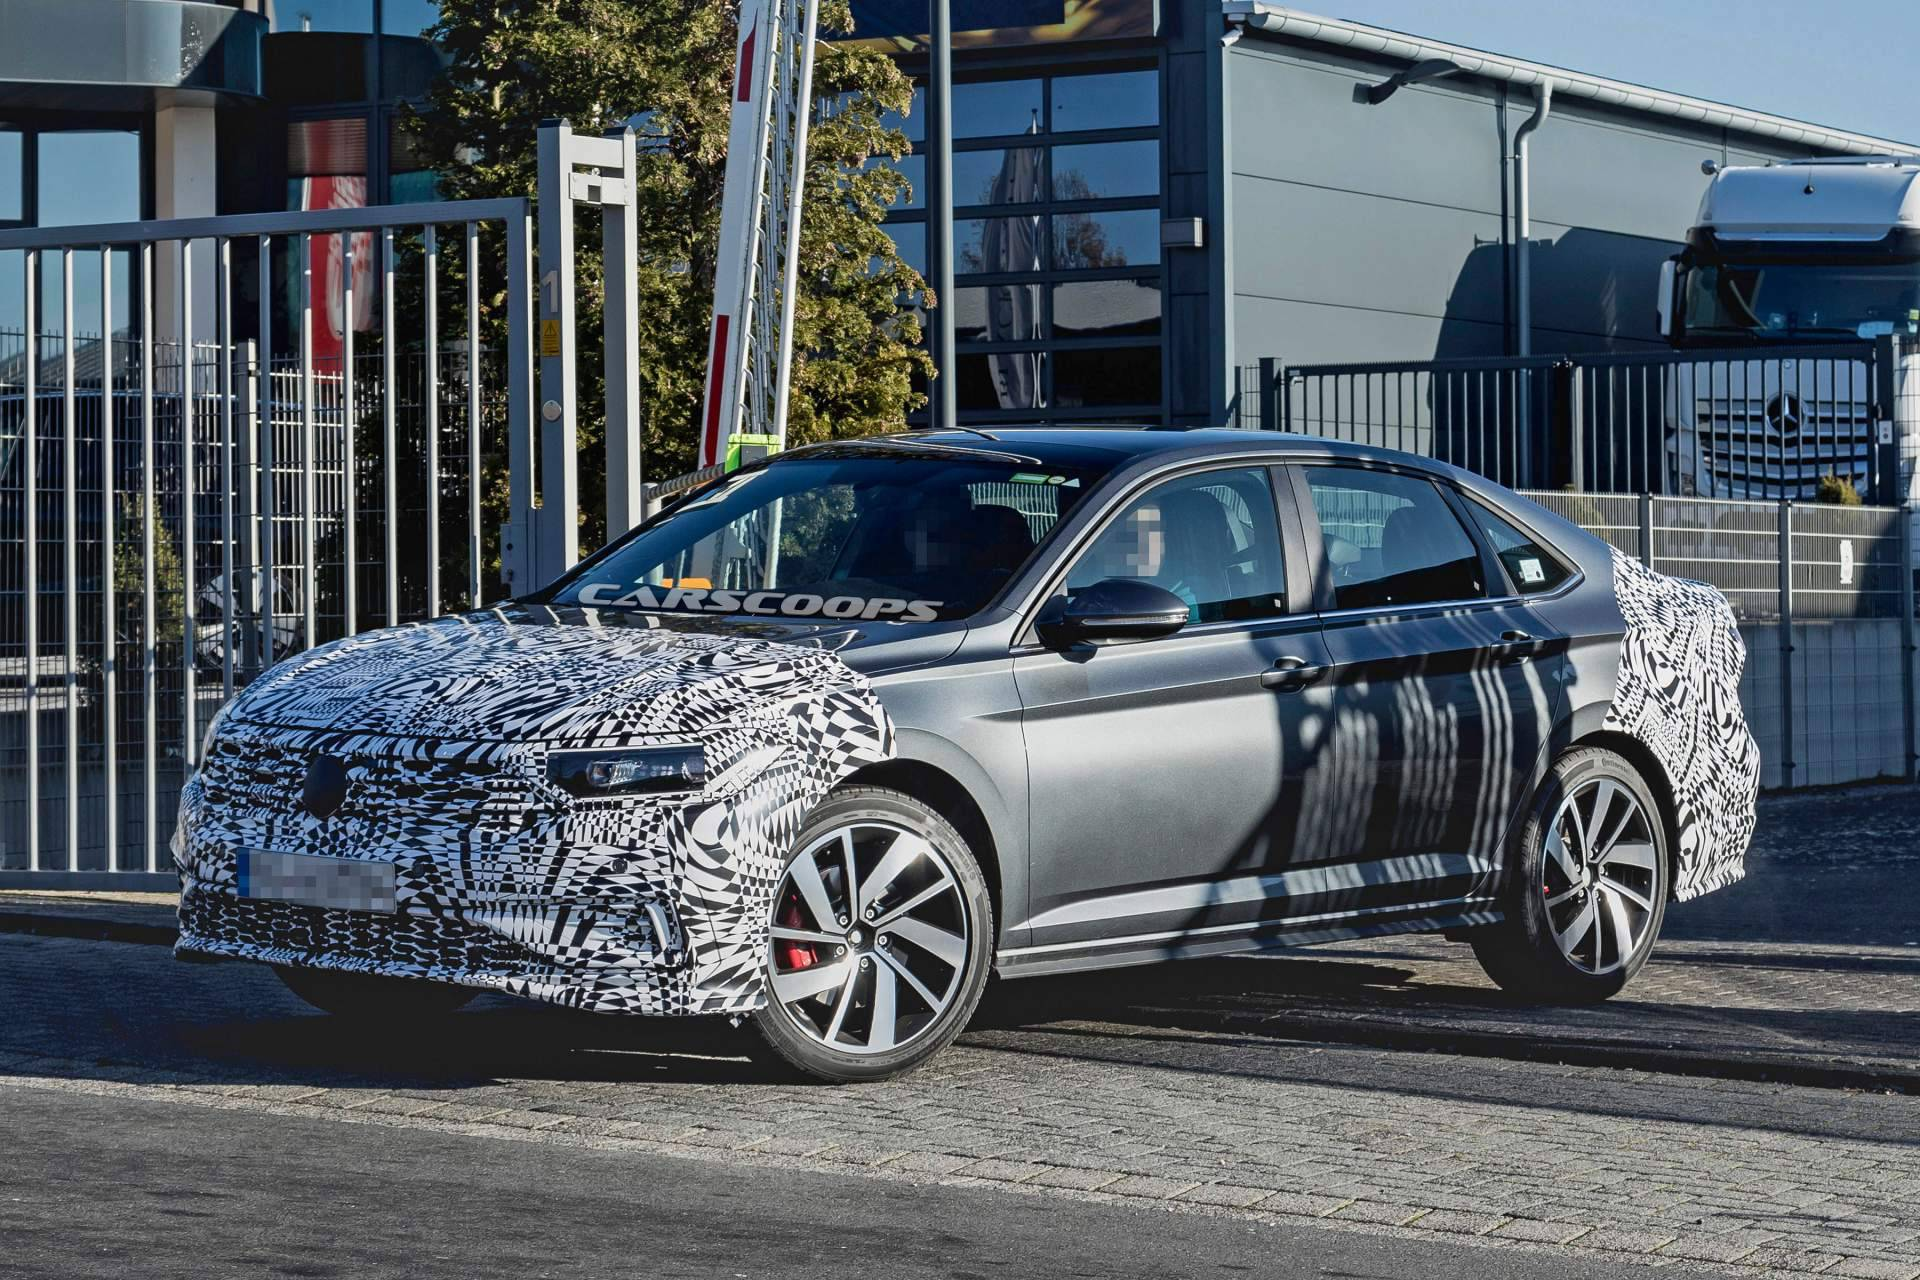 37 All New 2020 Volkswagen Jetta Photos